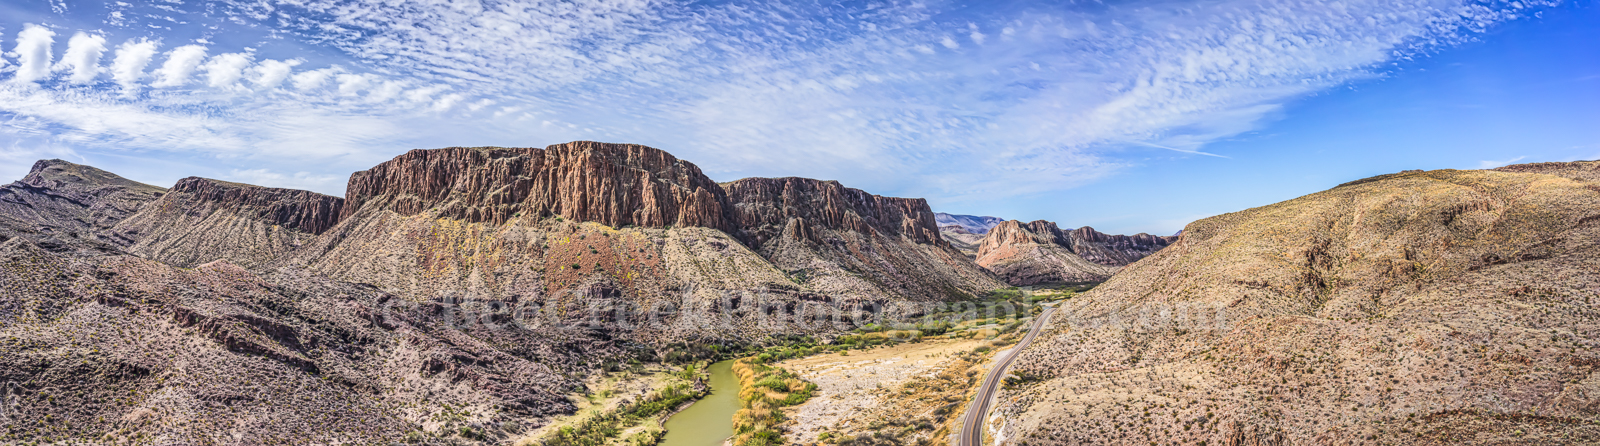 Big Bend State Park, Rio Grande, aerial, landscape, mexico, mountians, river road, us, water, photo